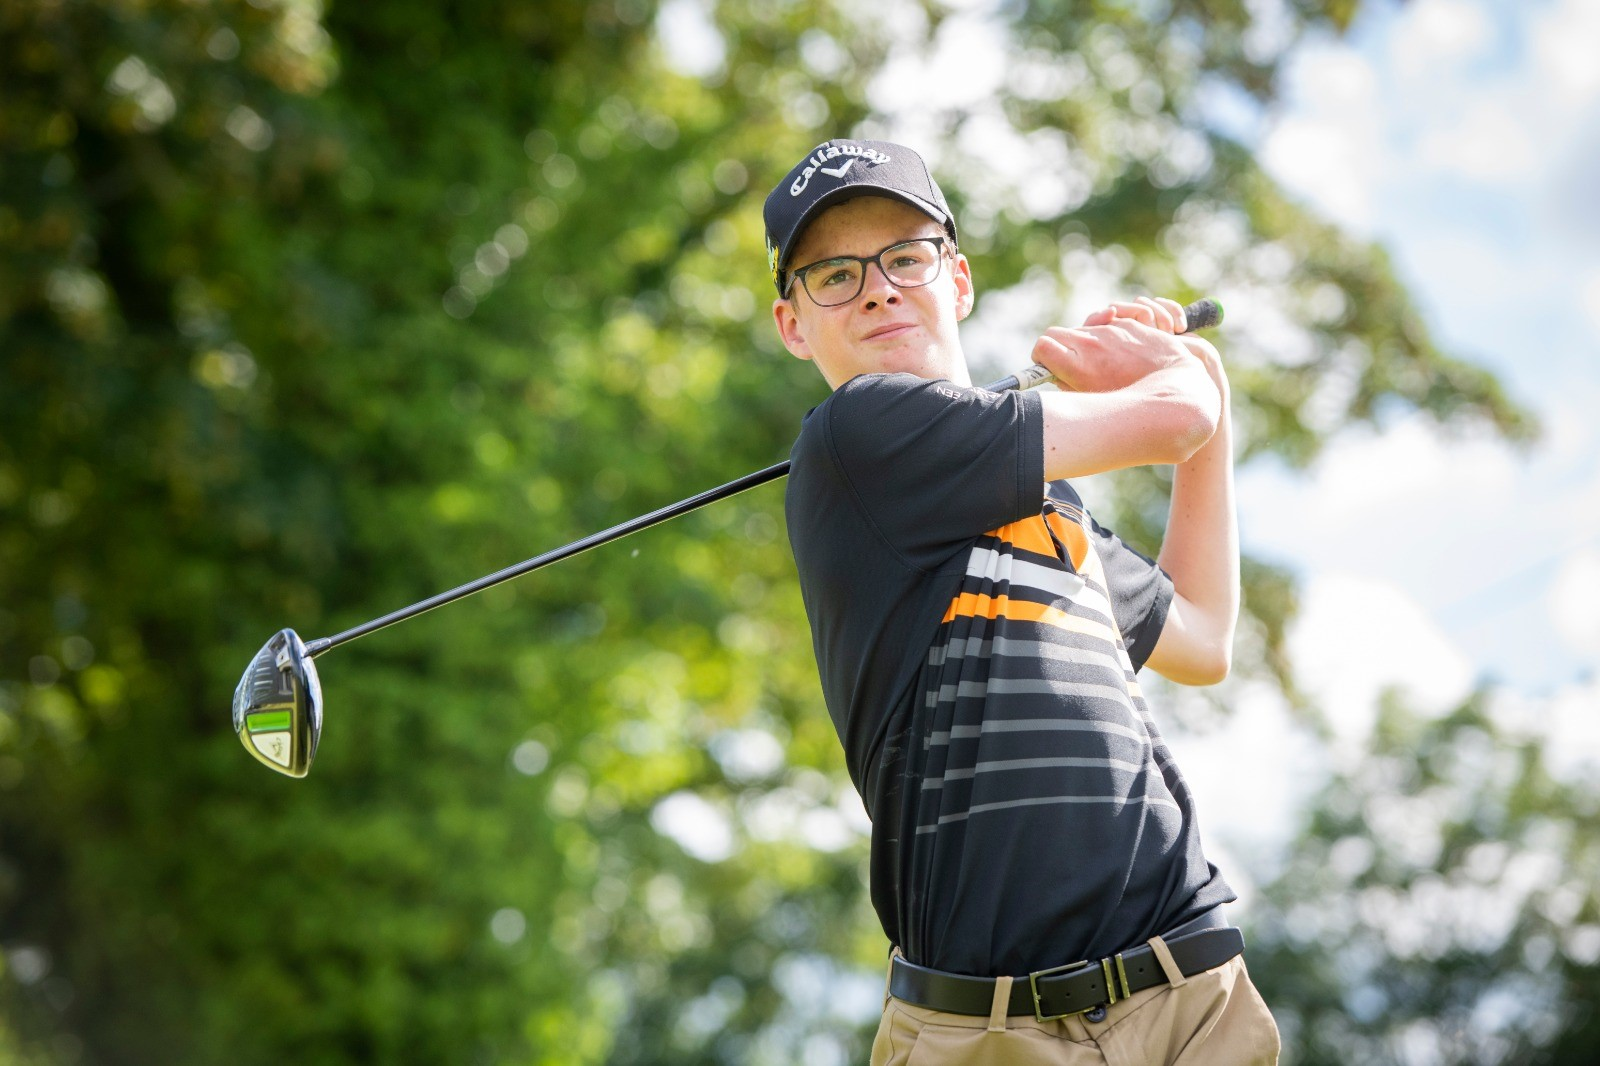 English U18 Championship – Day One: Blythe leads as Woad gives chase